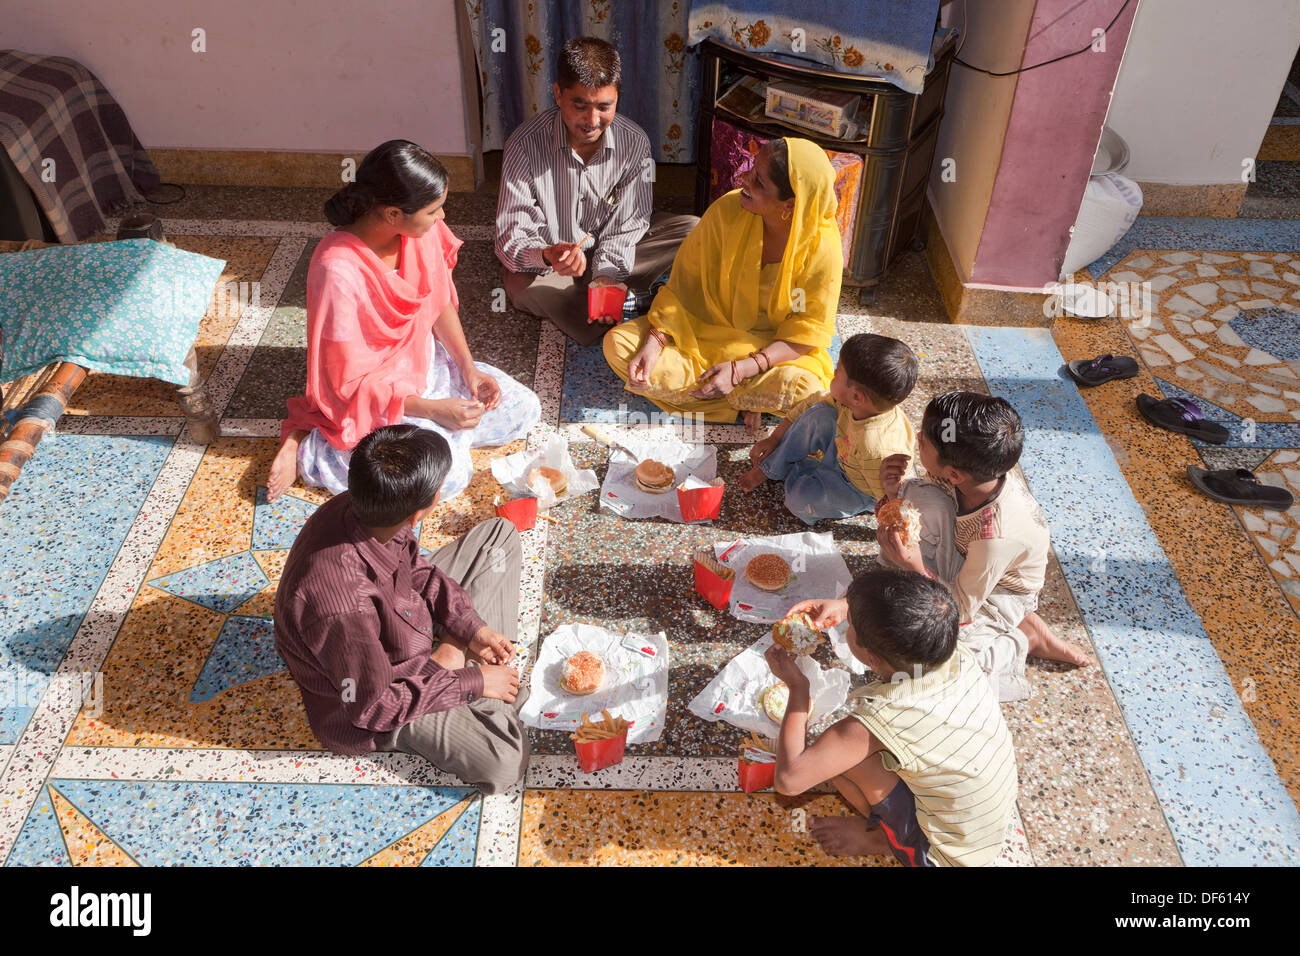 India, uttar Pradesh, Agra Mother & Father with five children eating western style fast food - Stock Image